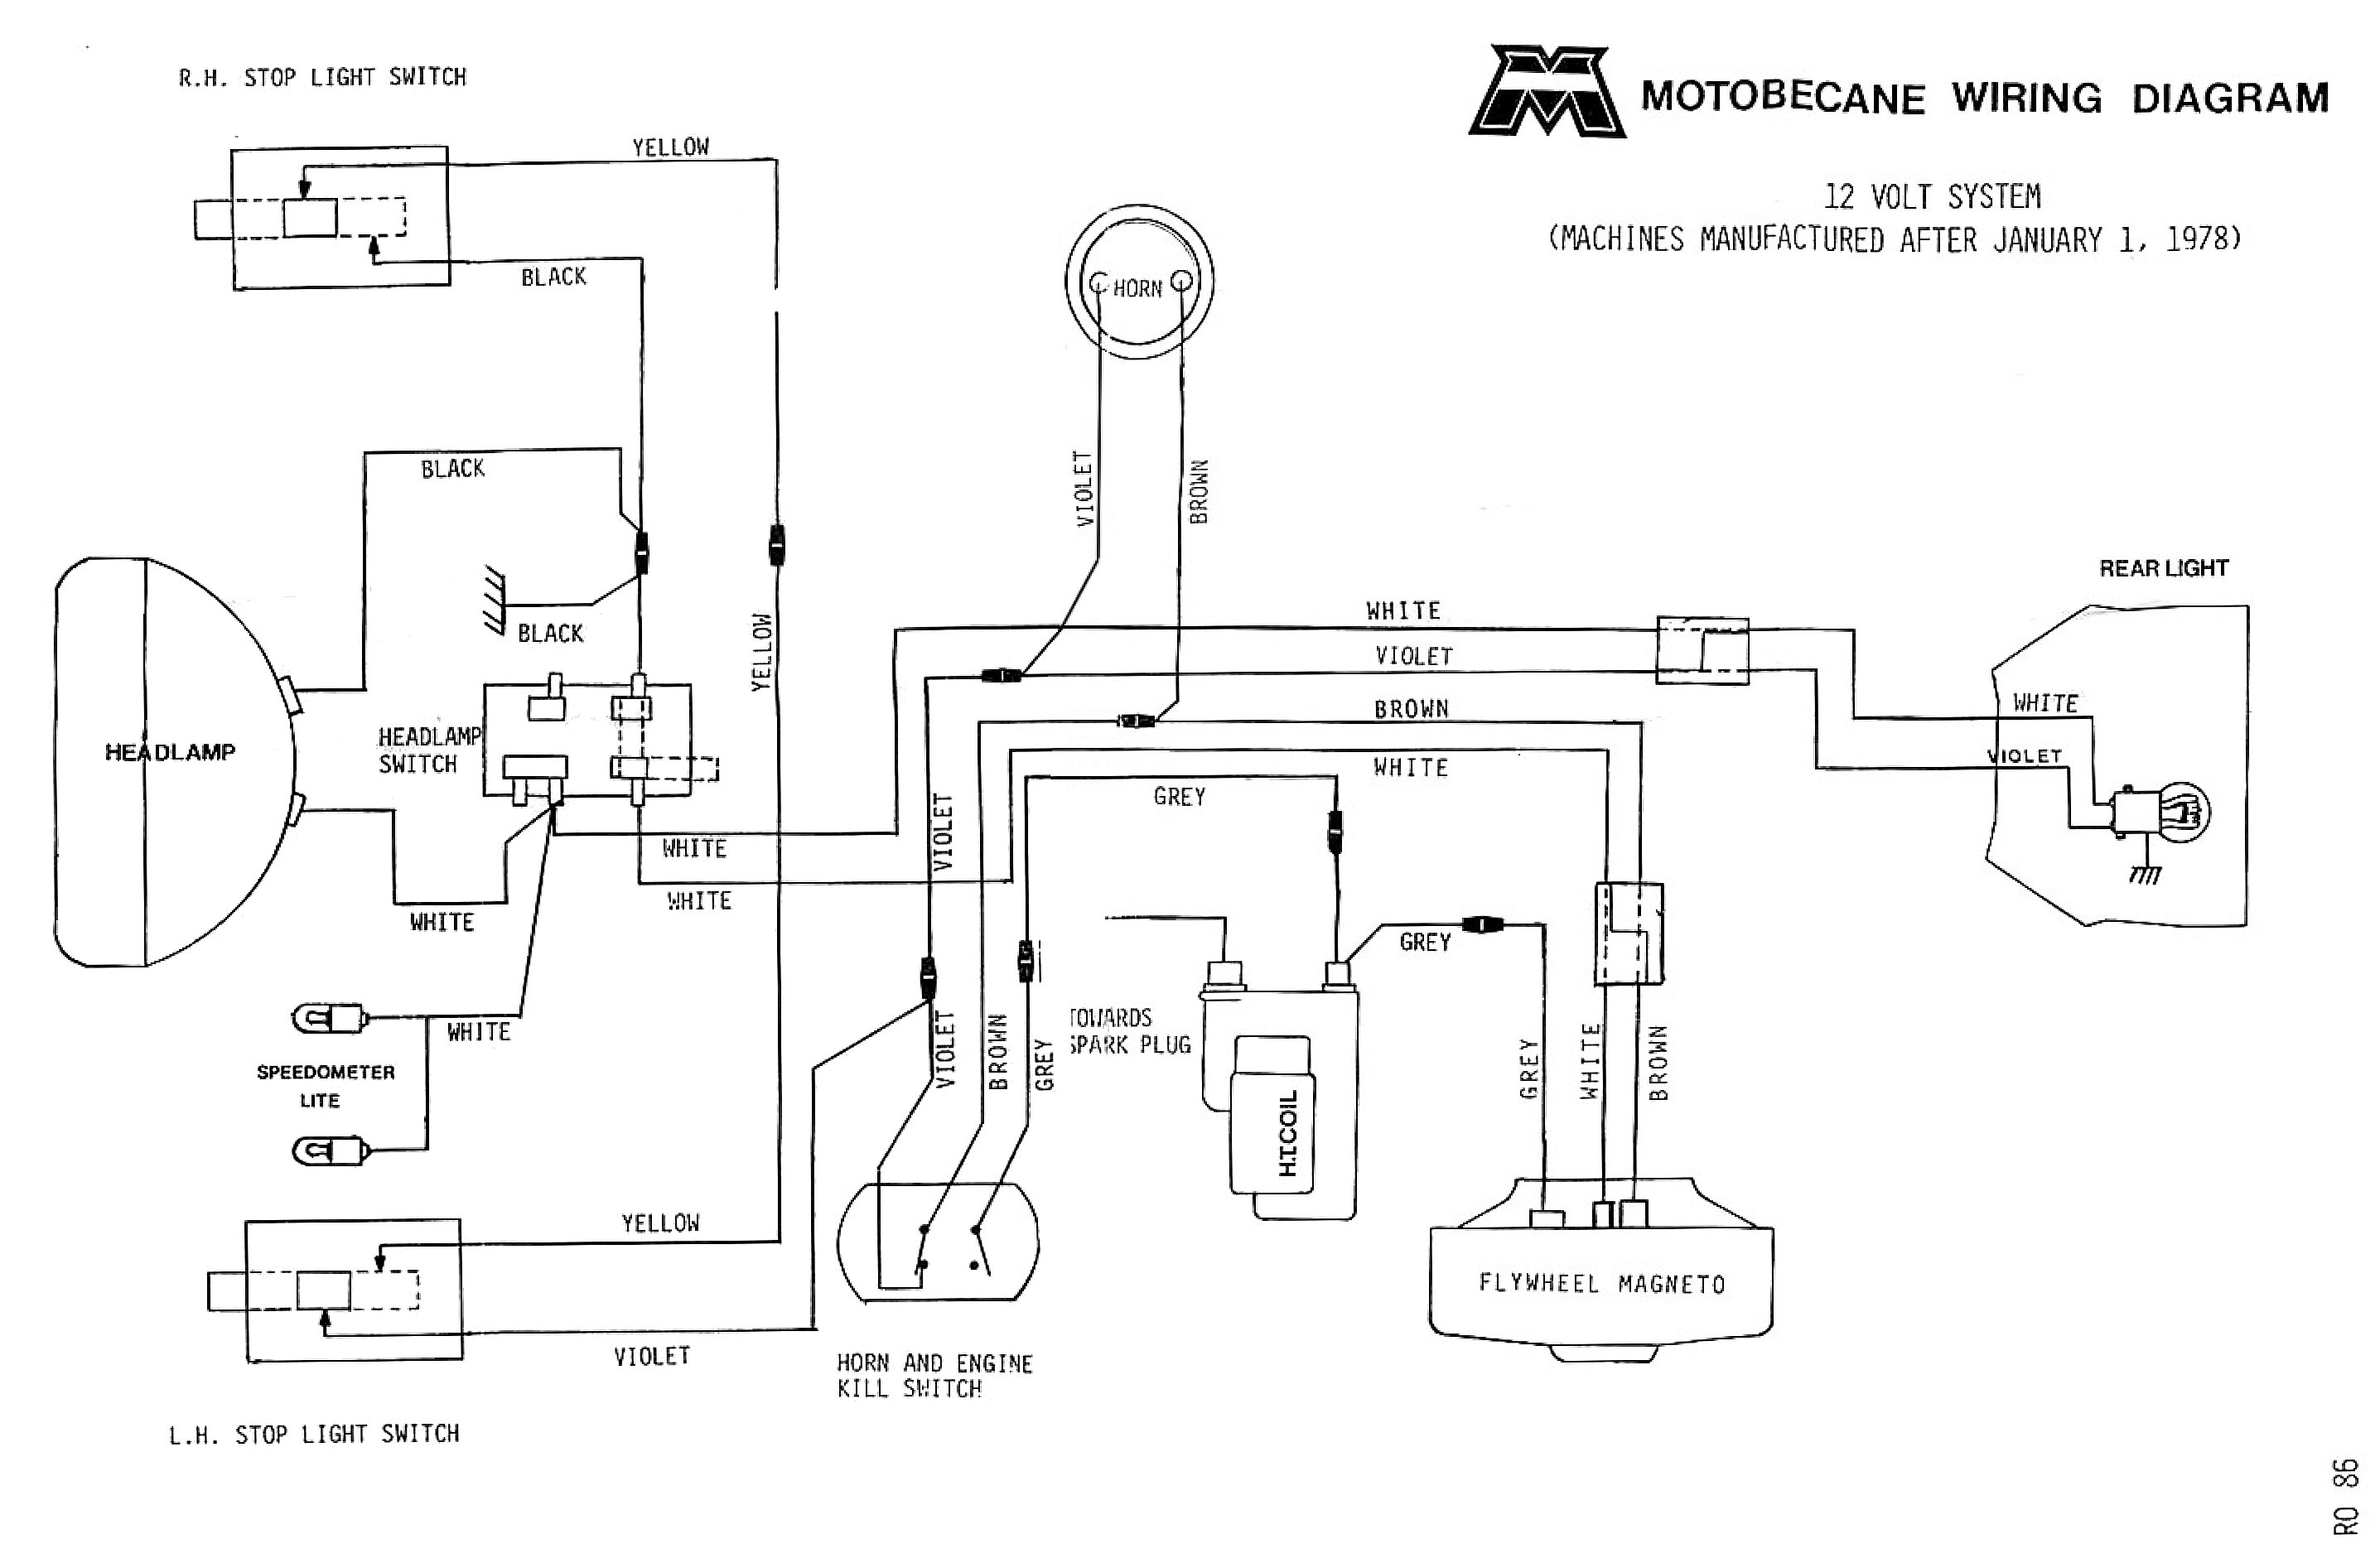 861 Ford Tractor Wiring Harness | Wiring Diagram Centre Old Ford Tractor Series Wiring Diagram on ford naa hydraulics diagram, 800 series ford tractor carburetor, 1953 ford 600 hydraulic pump diagram, ford alternator parts diagram, 800 series ford tractor parts, ford 3000 parts diagram,